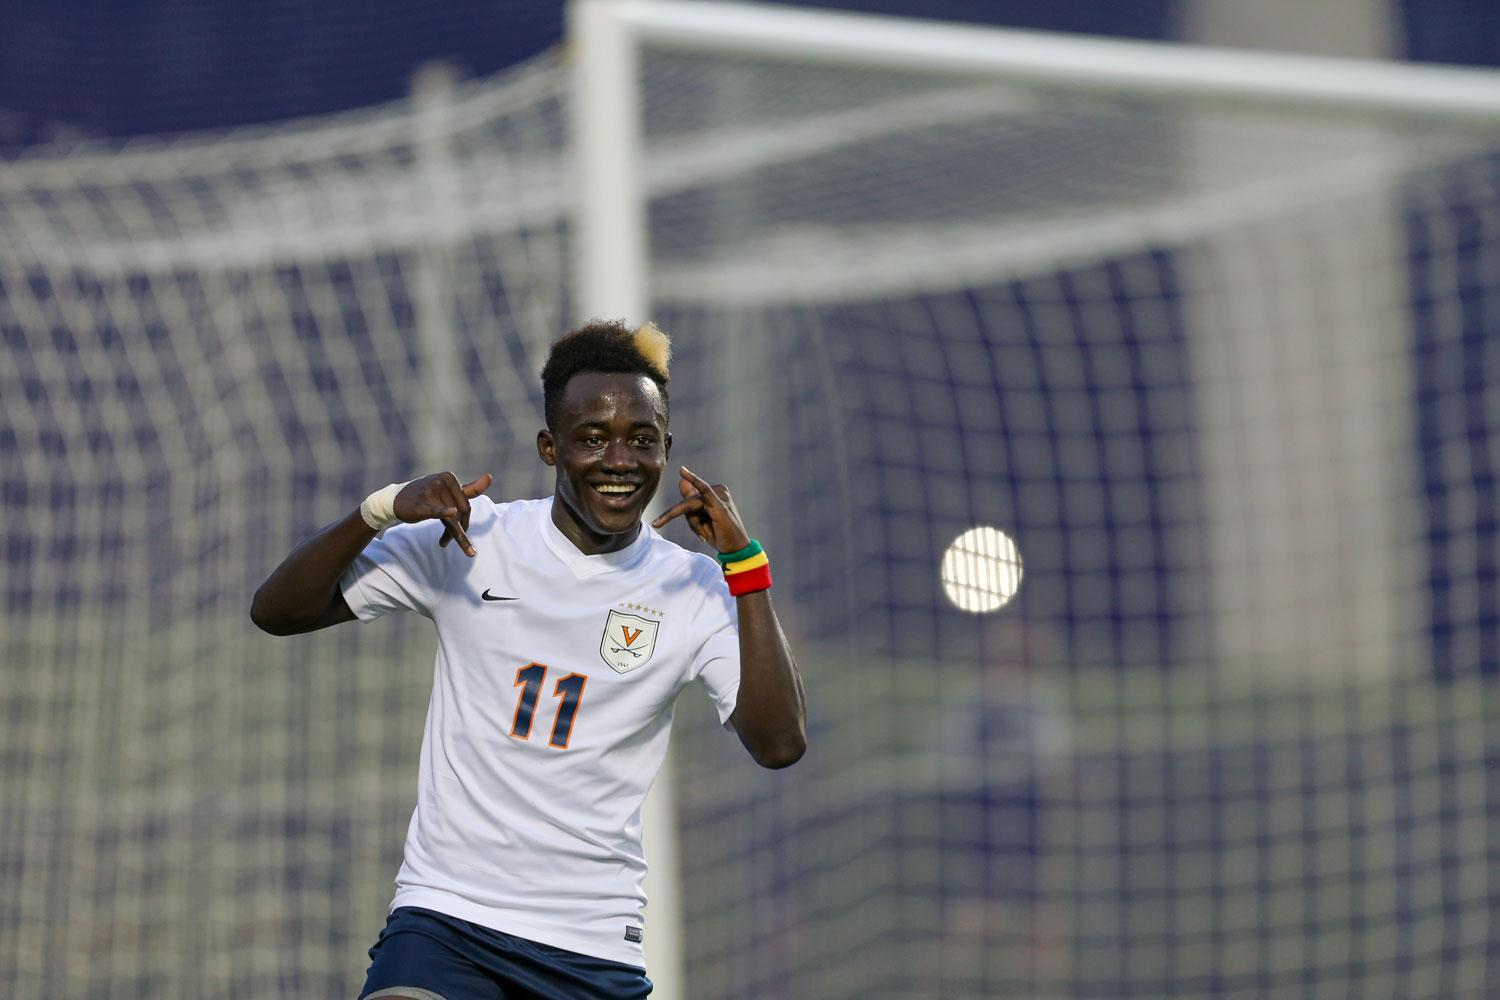 Soccer has taken Edward Opoku on a winding journey from Ghana to the Grounds of UVA.